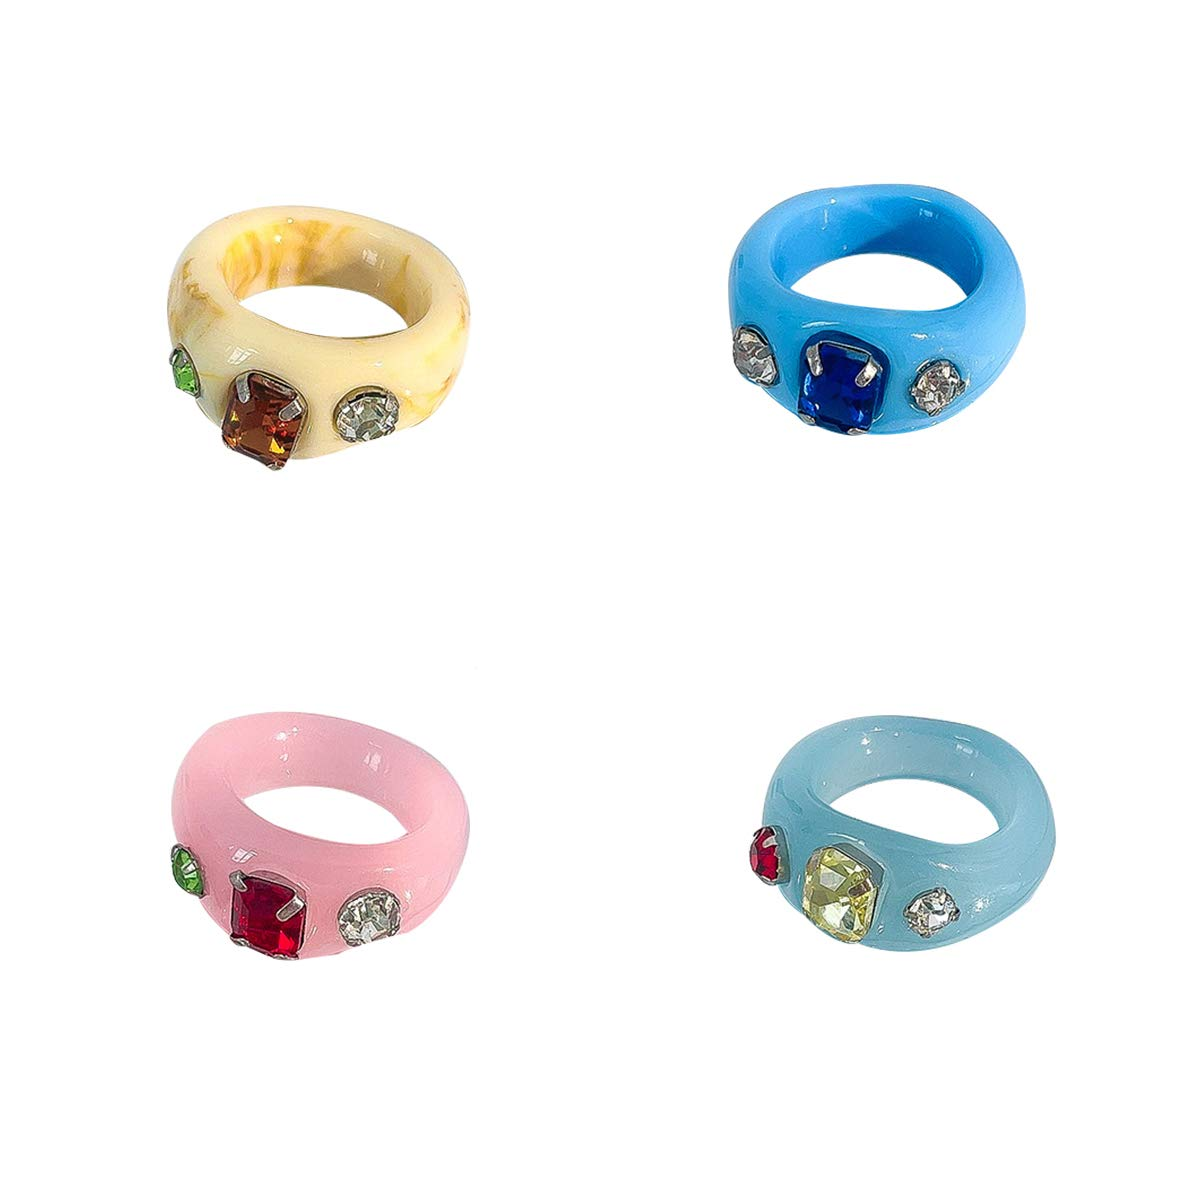 KURTCB Vintage Resin Rings Handmade Chunky Acrylic Rhinestone Colorful Transparent Wide Square Dome Stackable Finger Ring Set for Women Girls